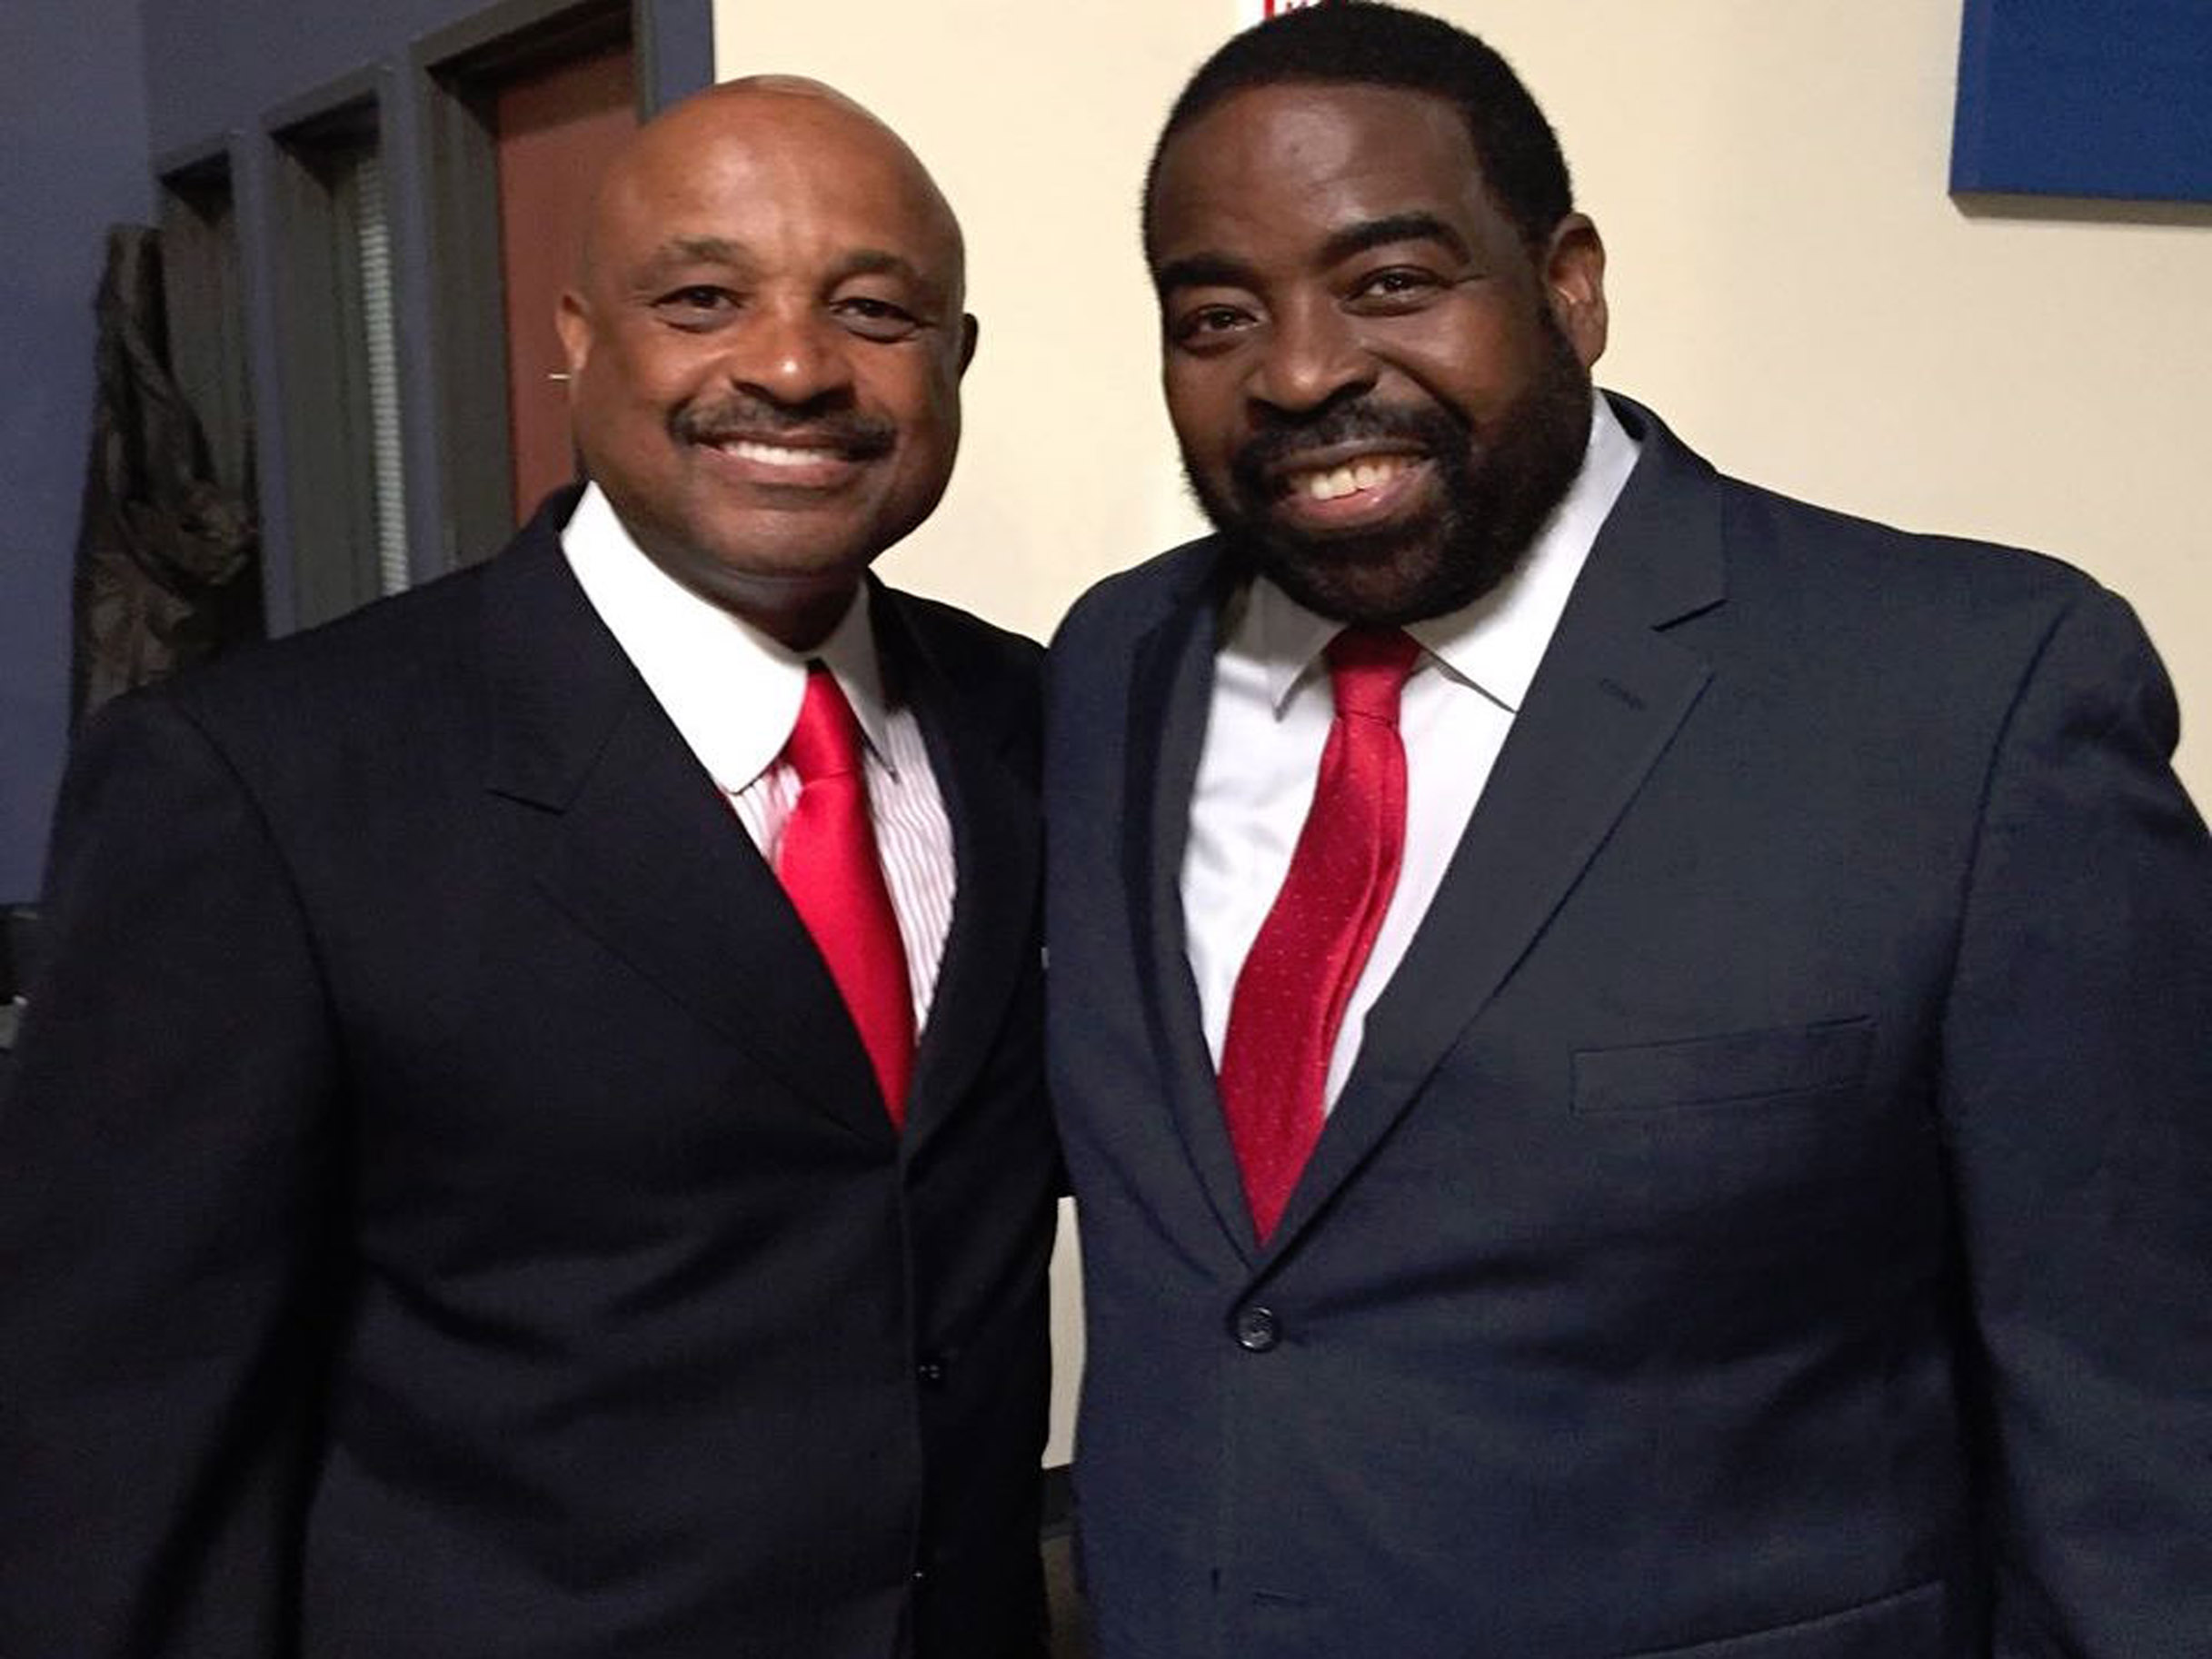 Dr. Willie Jolley and Les Brown